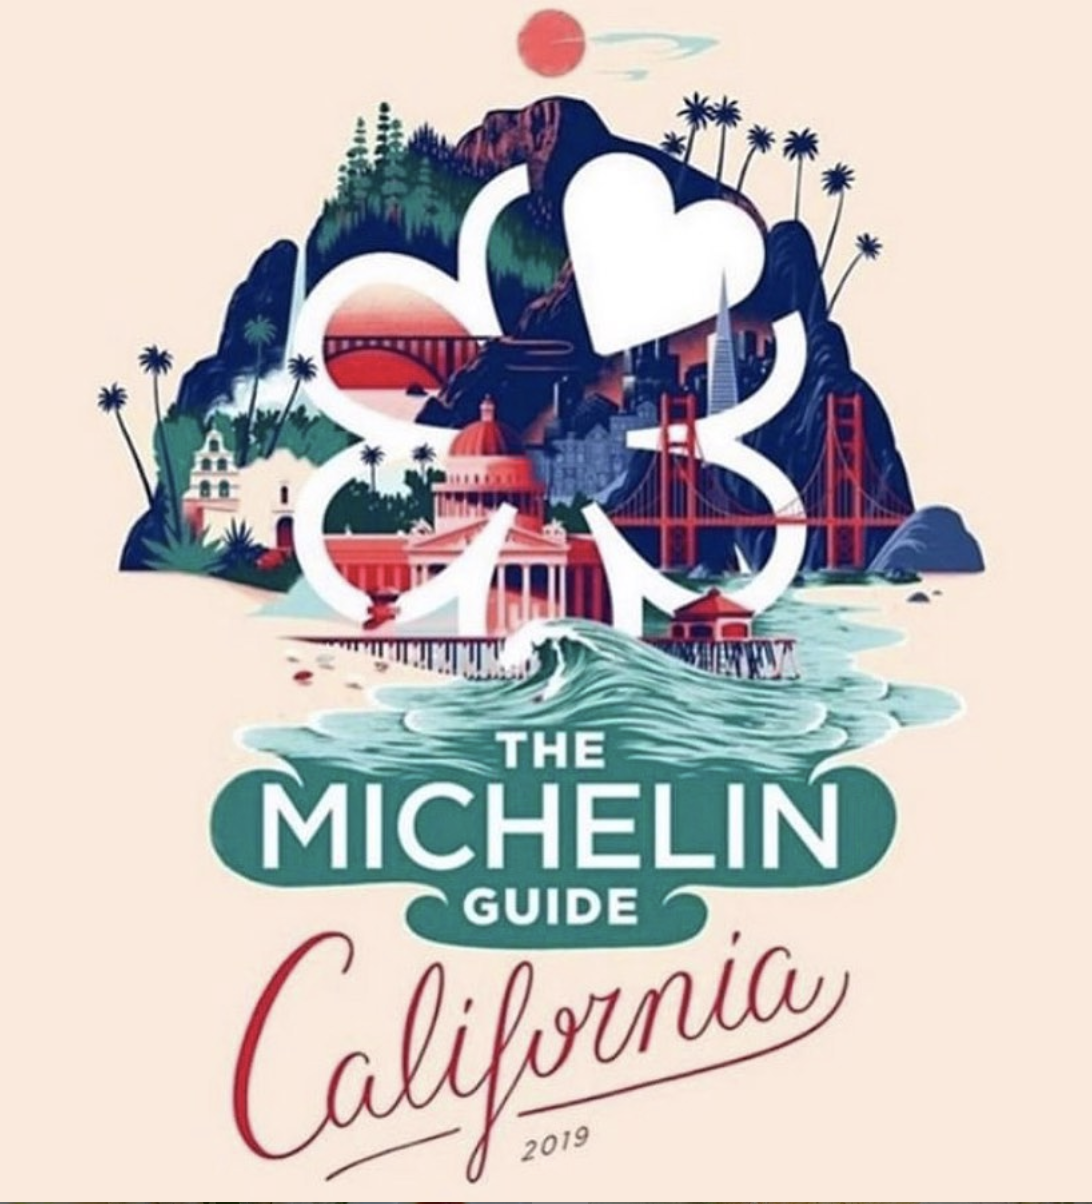 Michelin Guide California 2019 - Our client partners at SingleThread Farm, Restaurant, Inn retained their 3 Michelin stars for the second time, and Harbor House Inn achieved 1 Michelin star in just over one year of being open.